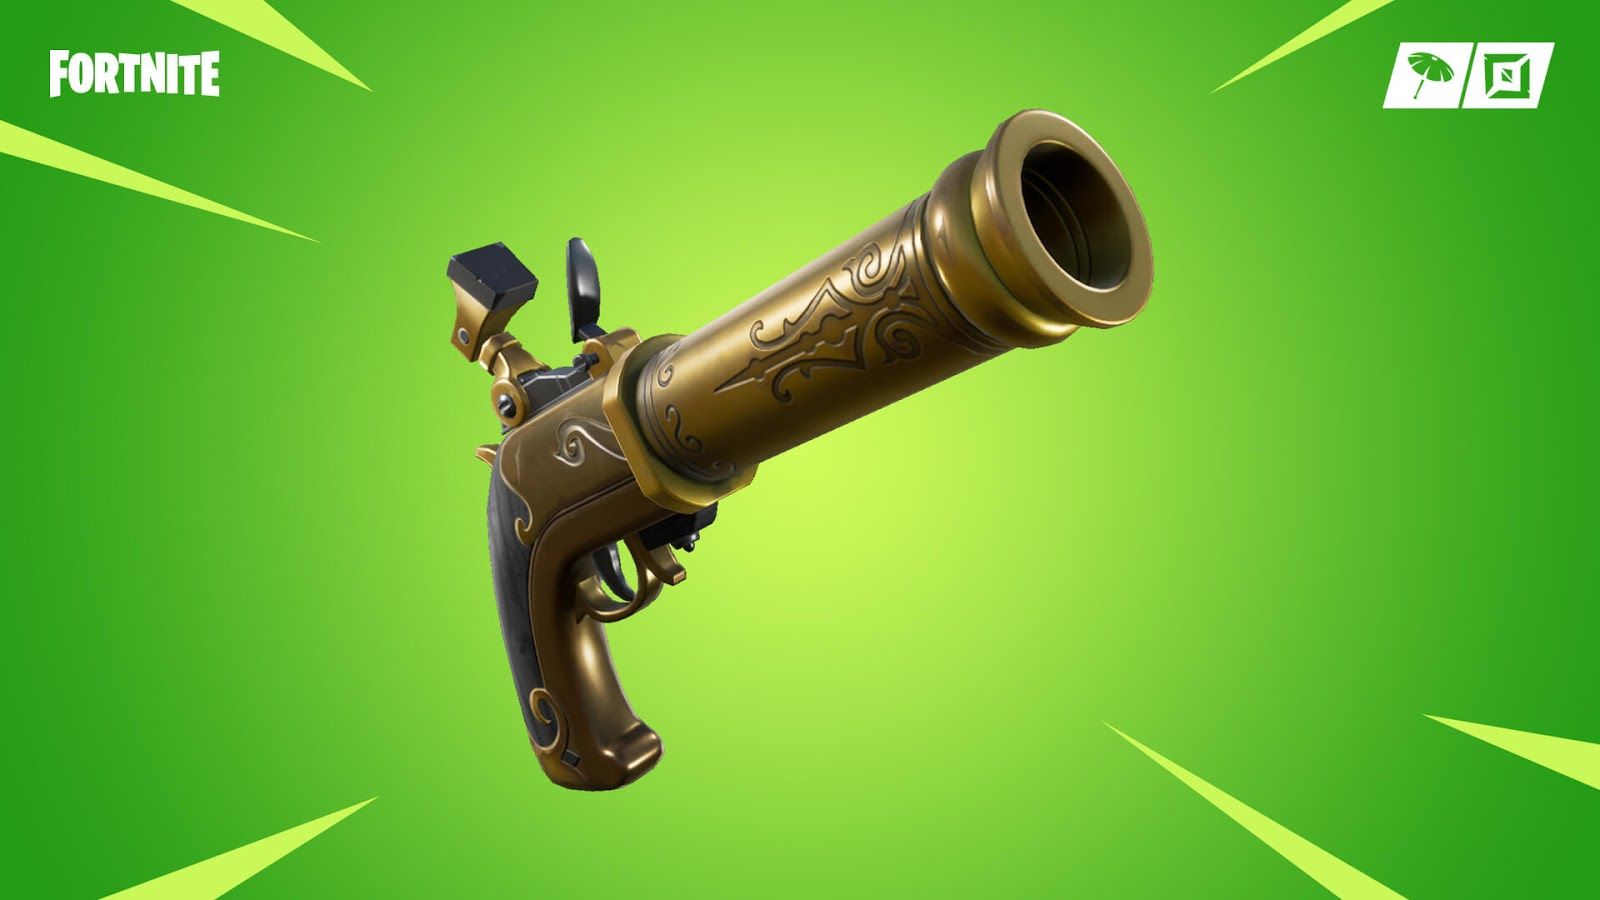 'Fortnite' Update 8.11 Out Now Adds Flint-Knock Pistol & One-Shot LTM, New Events - Patch Notes